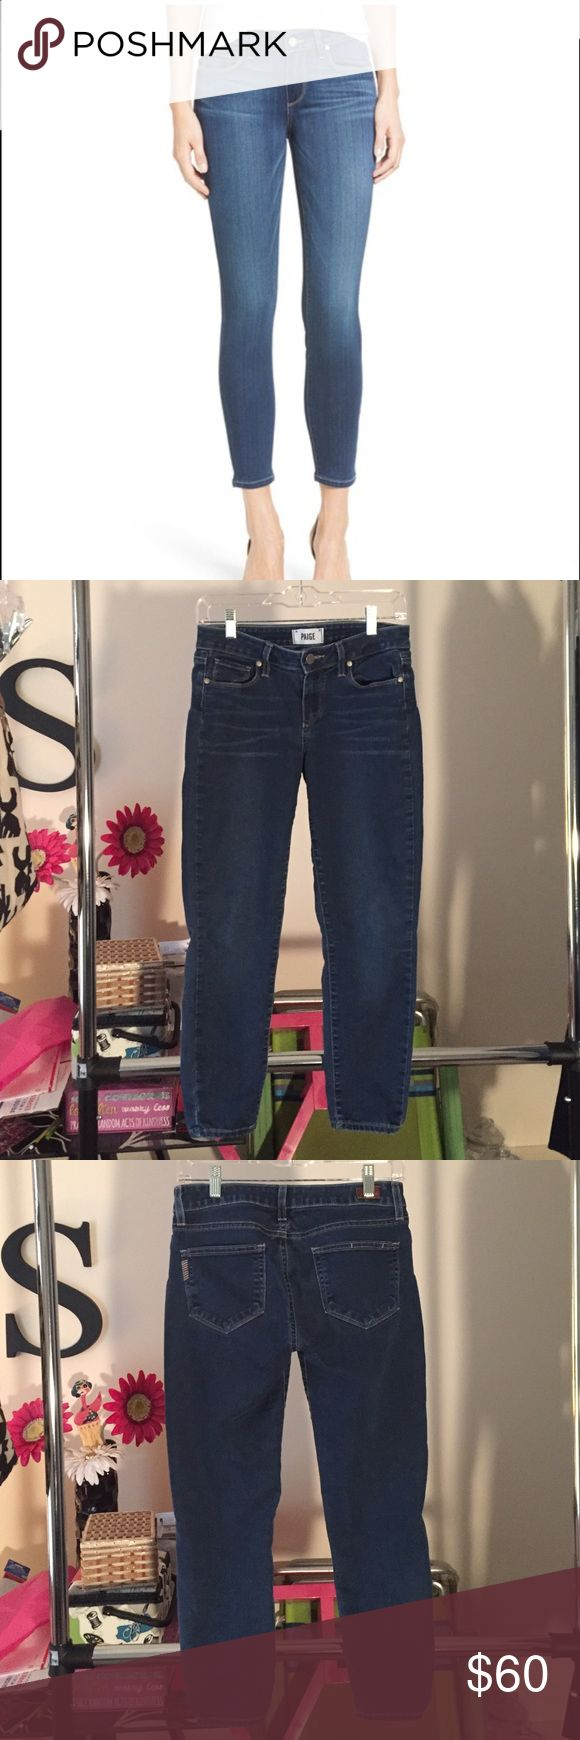 """🔥new listing🔥 Paige verdugo crop skinny jeans Super comfy paige verdugo crop denim! These jeans do have stretch to naturally form around your body. Inseam- 24"""" waist- 14.25"""" Paige Jeans Jeans Ankle & Cropped"""